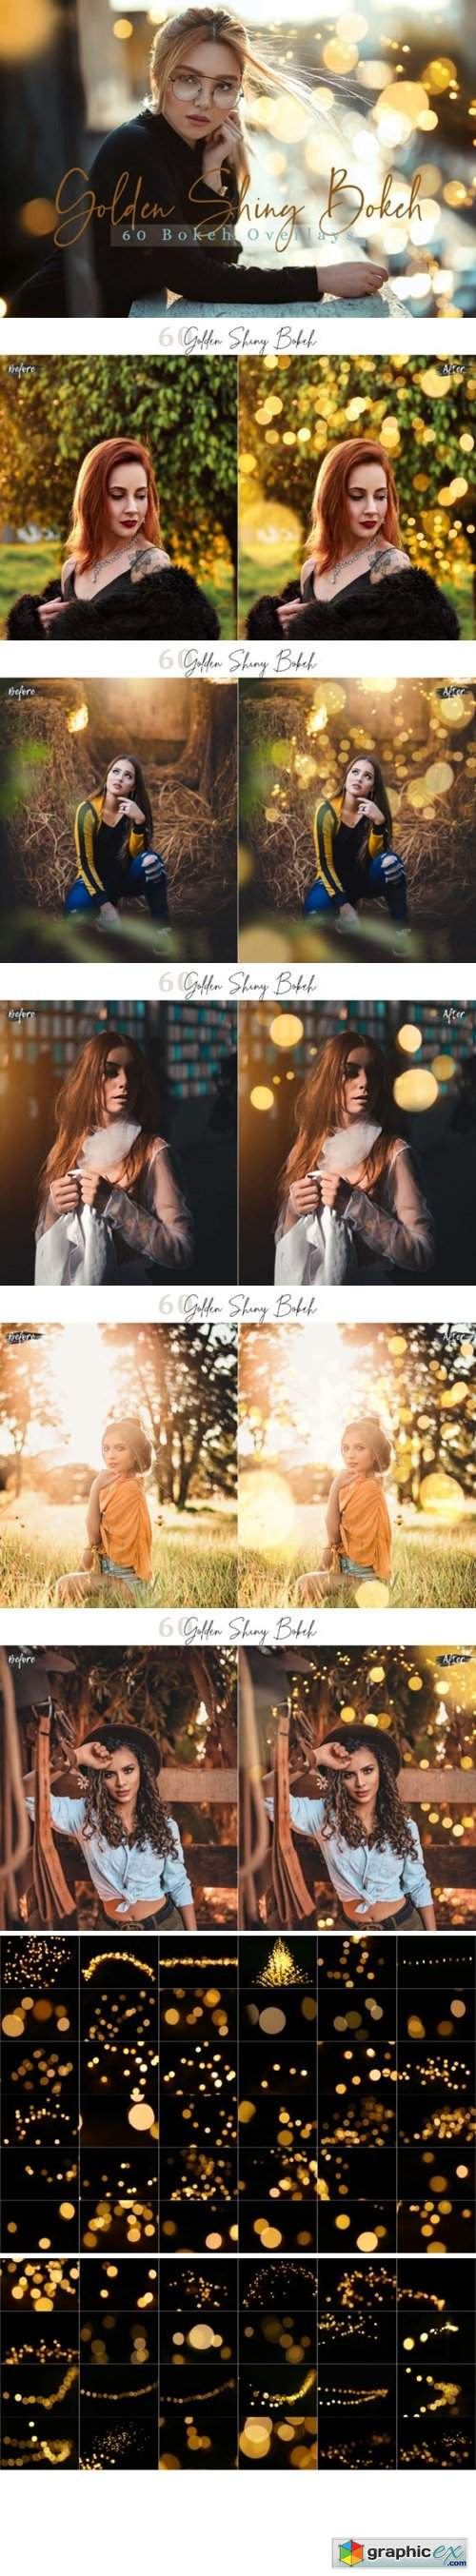 60 Golden Shiny Bokeh Lights Overlays